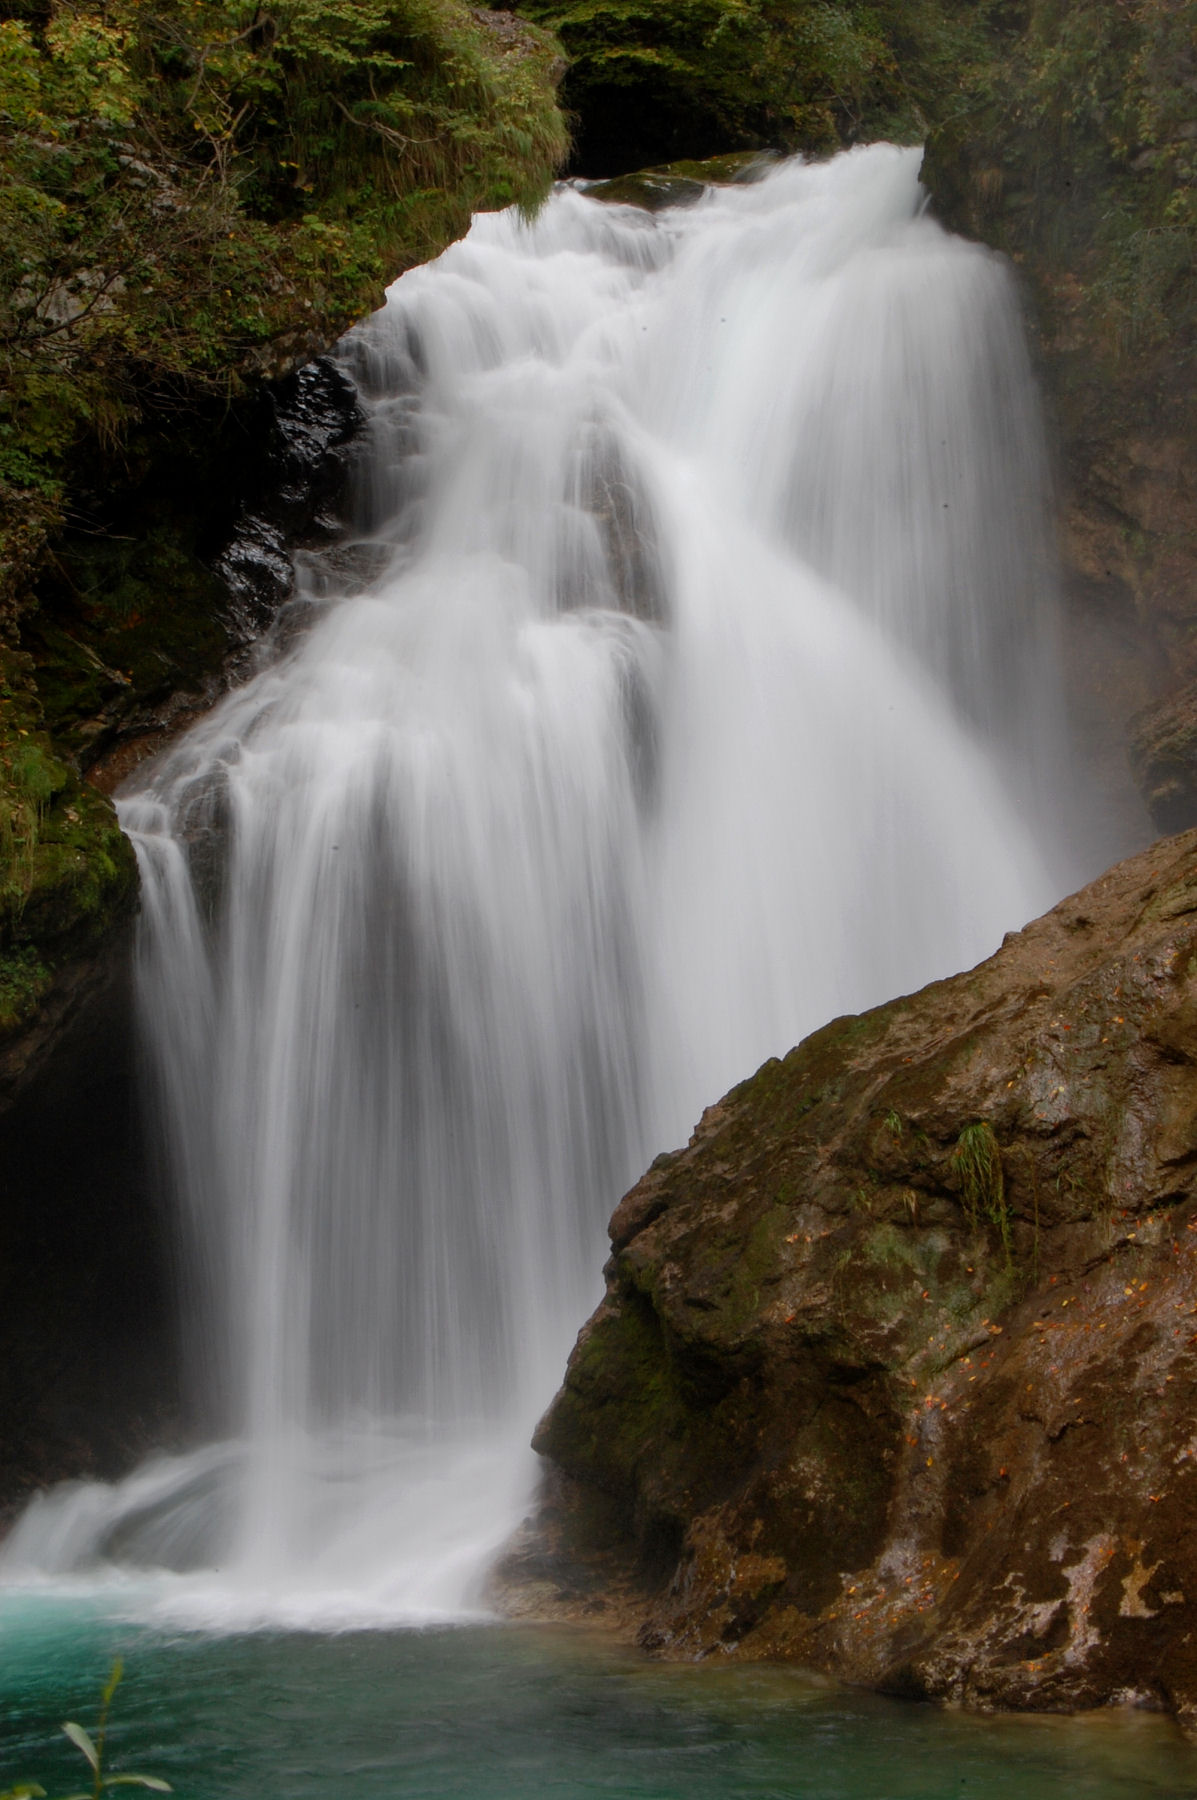 The magnificent Sum waterfall at the end of Vintgar Gorge